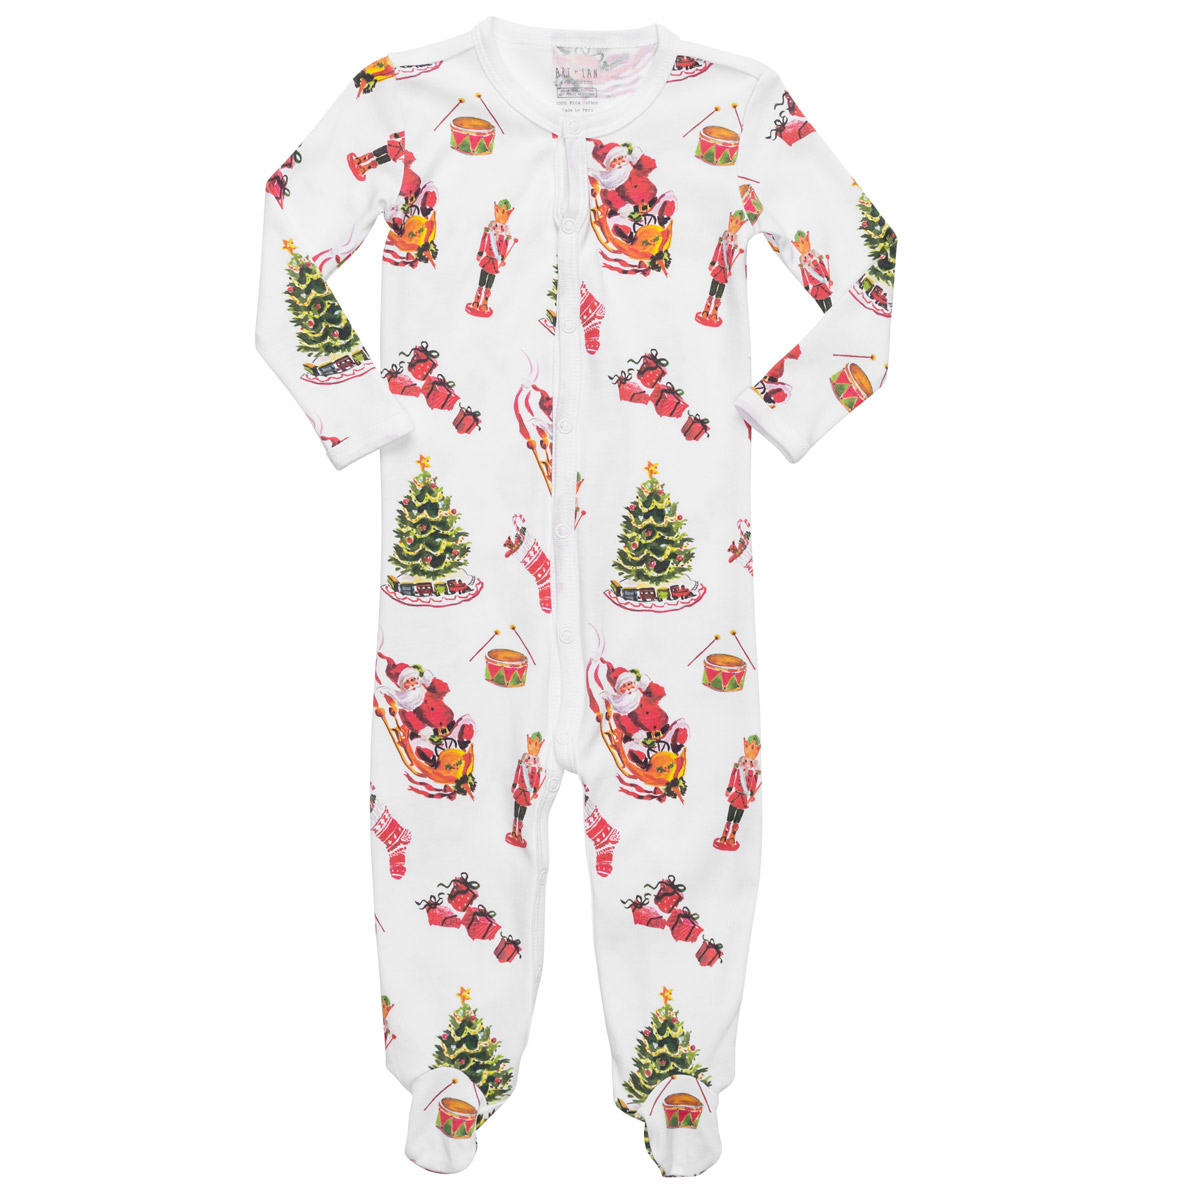 Hart + Land Classic Holiday Footed Pajama